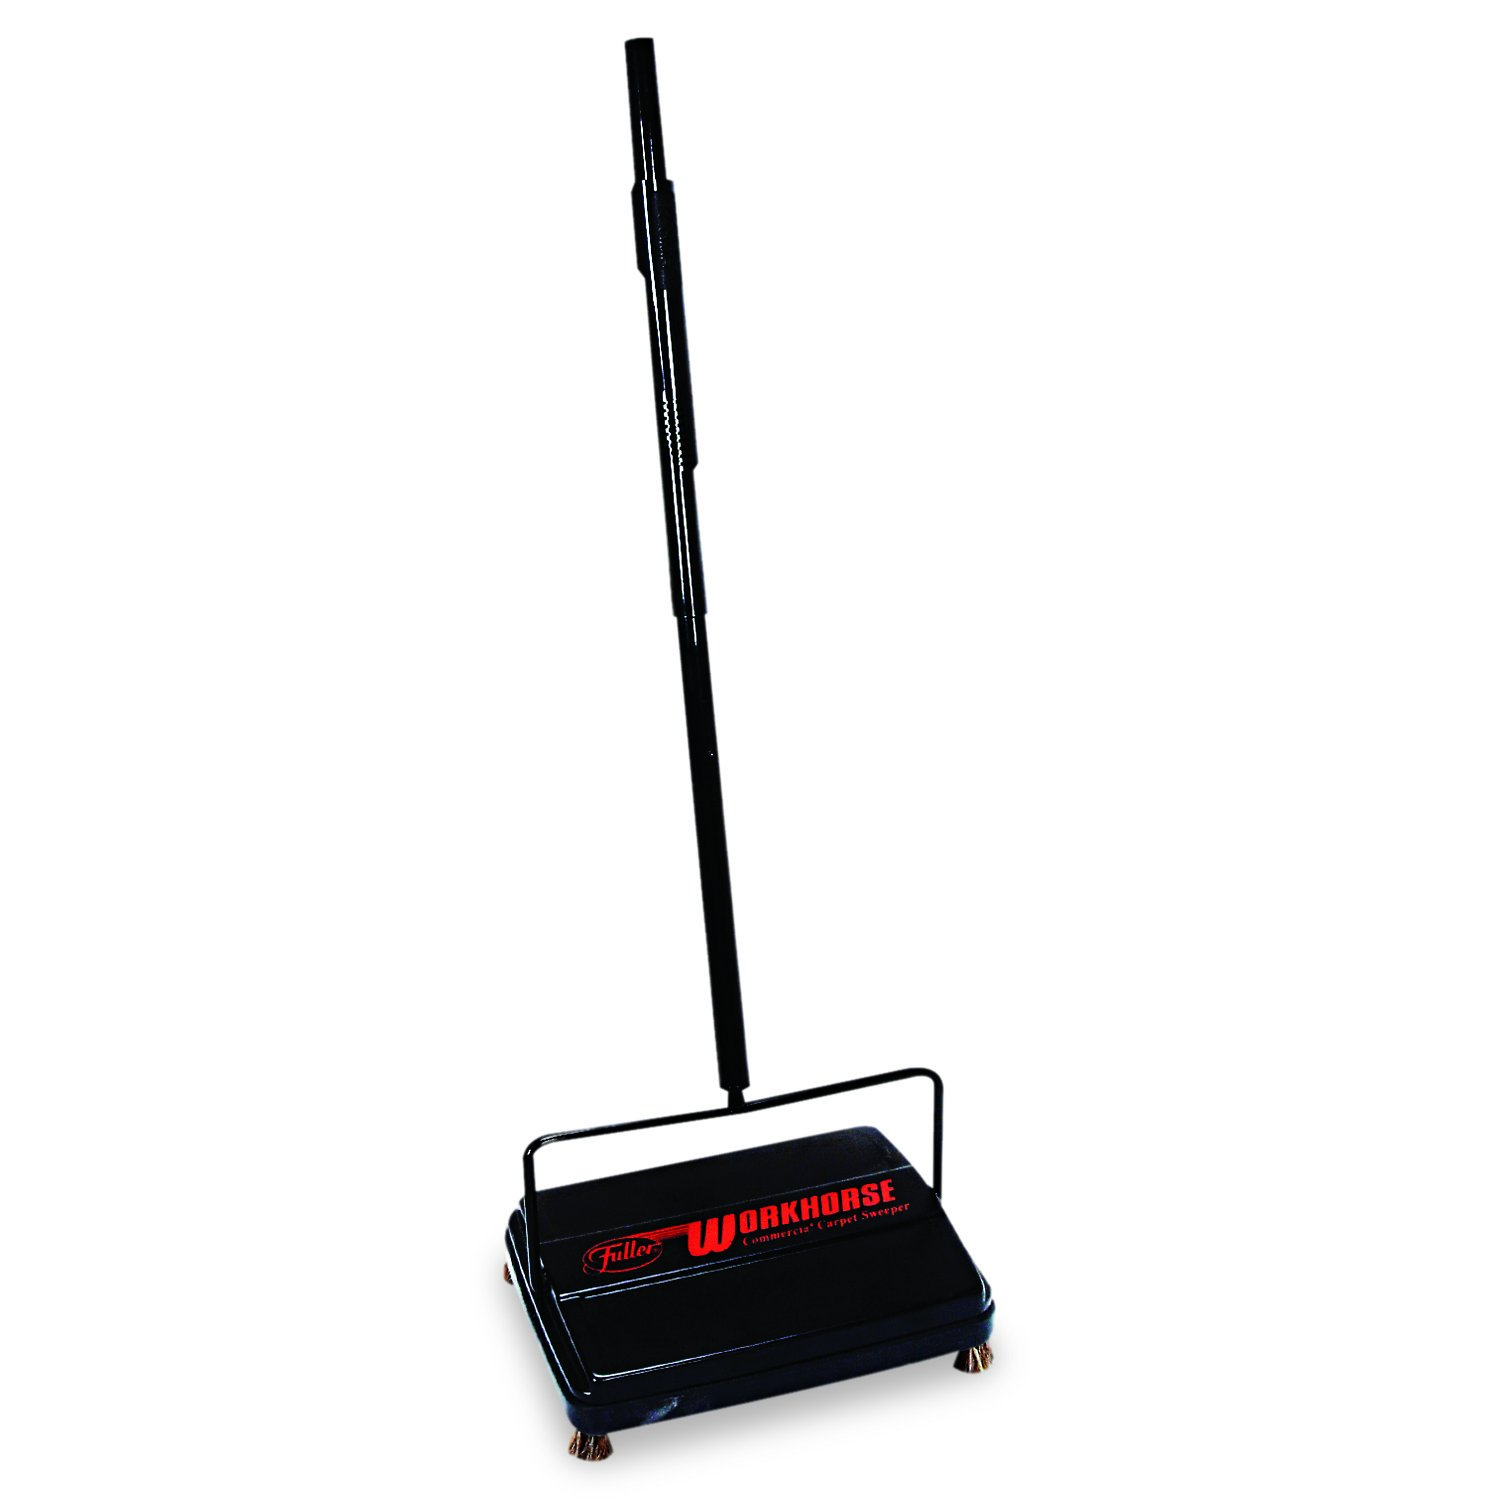 Franklin Cleaning Technology FRK 39357 Workhorse Carpet Sweeper, 46'', Black by Unknown